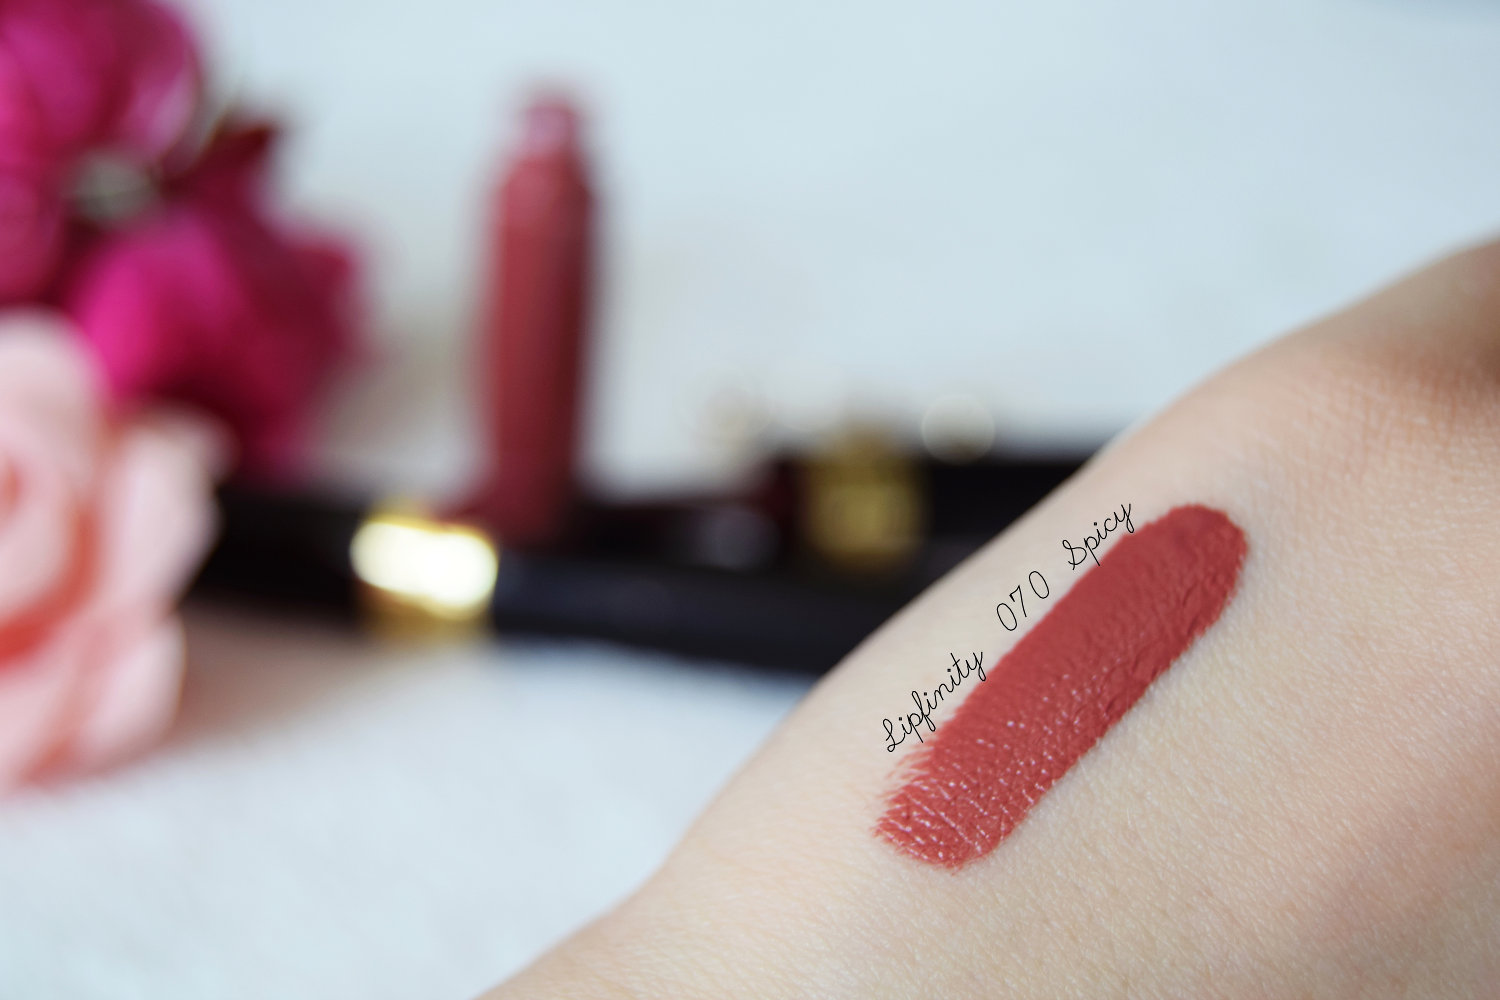 lipfinity_max_factor_review_zalabell_beauty_5